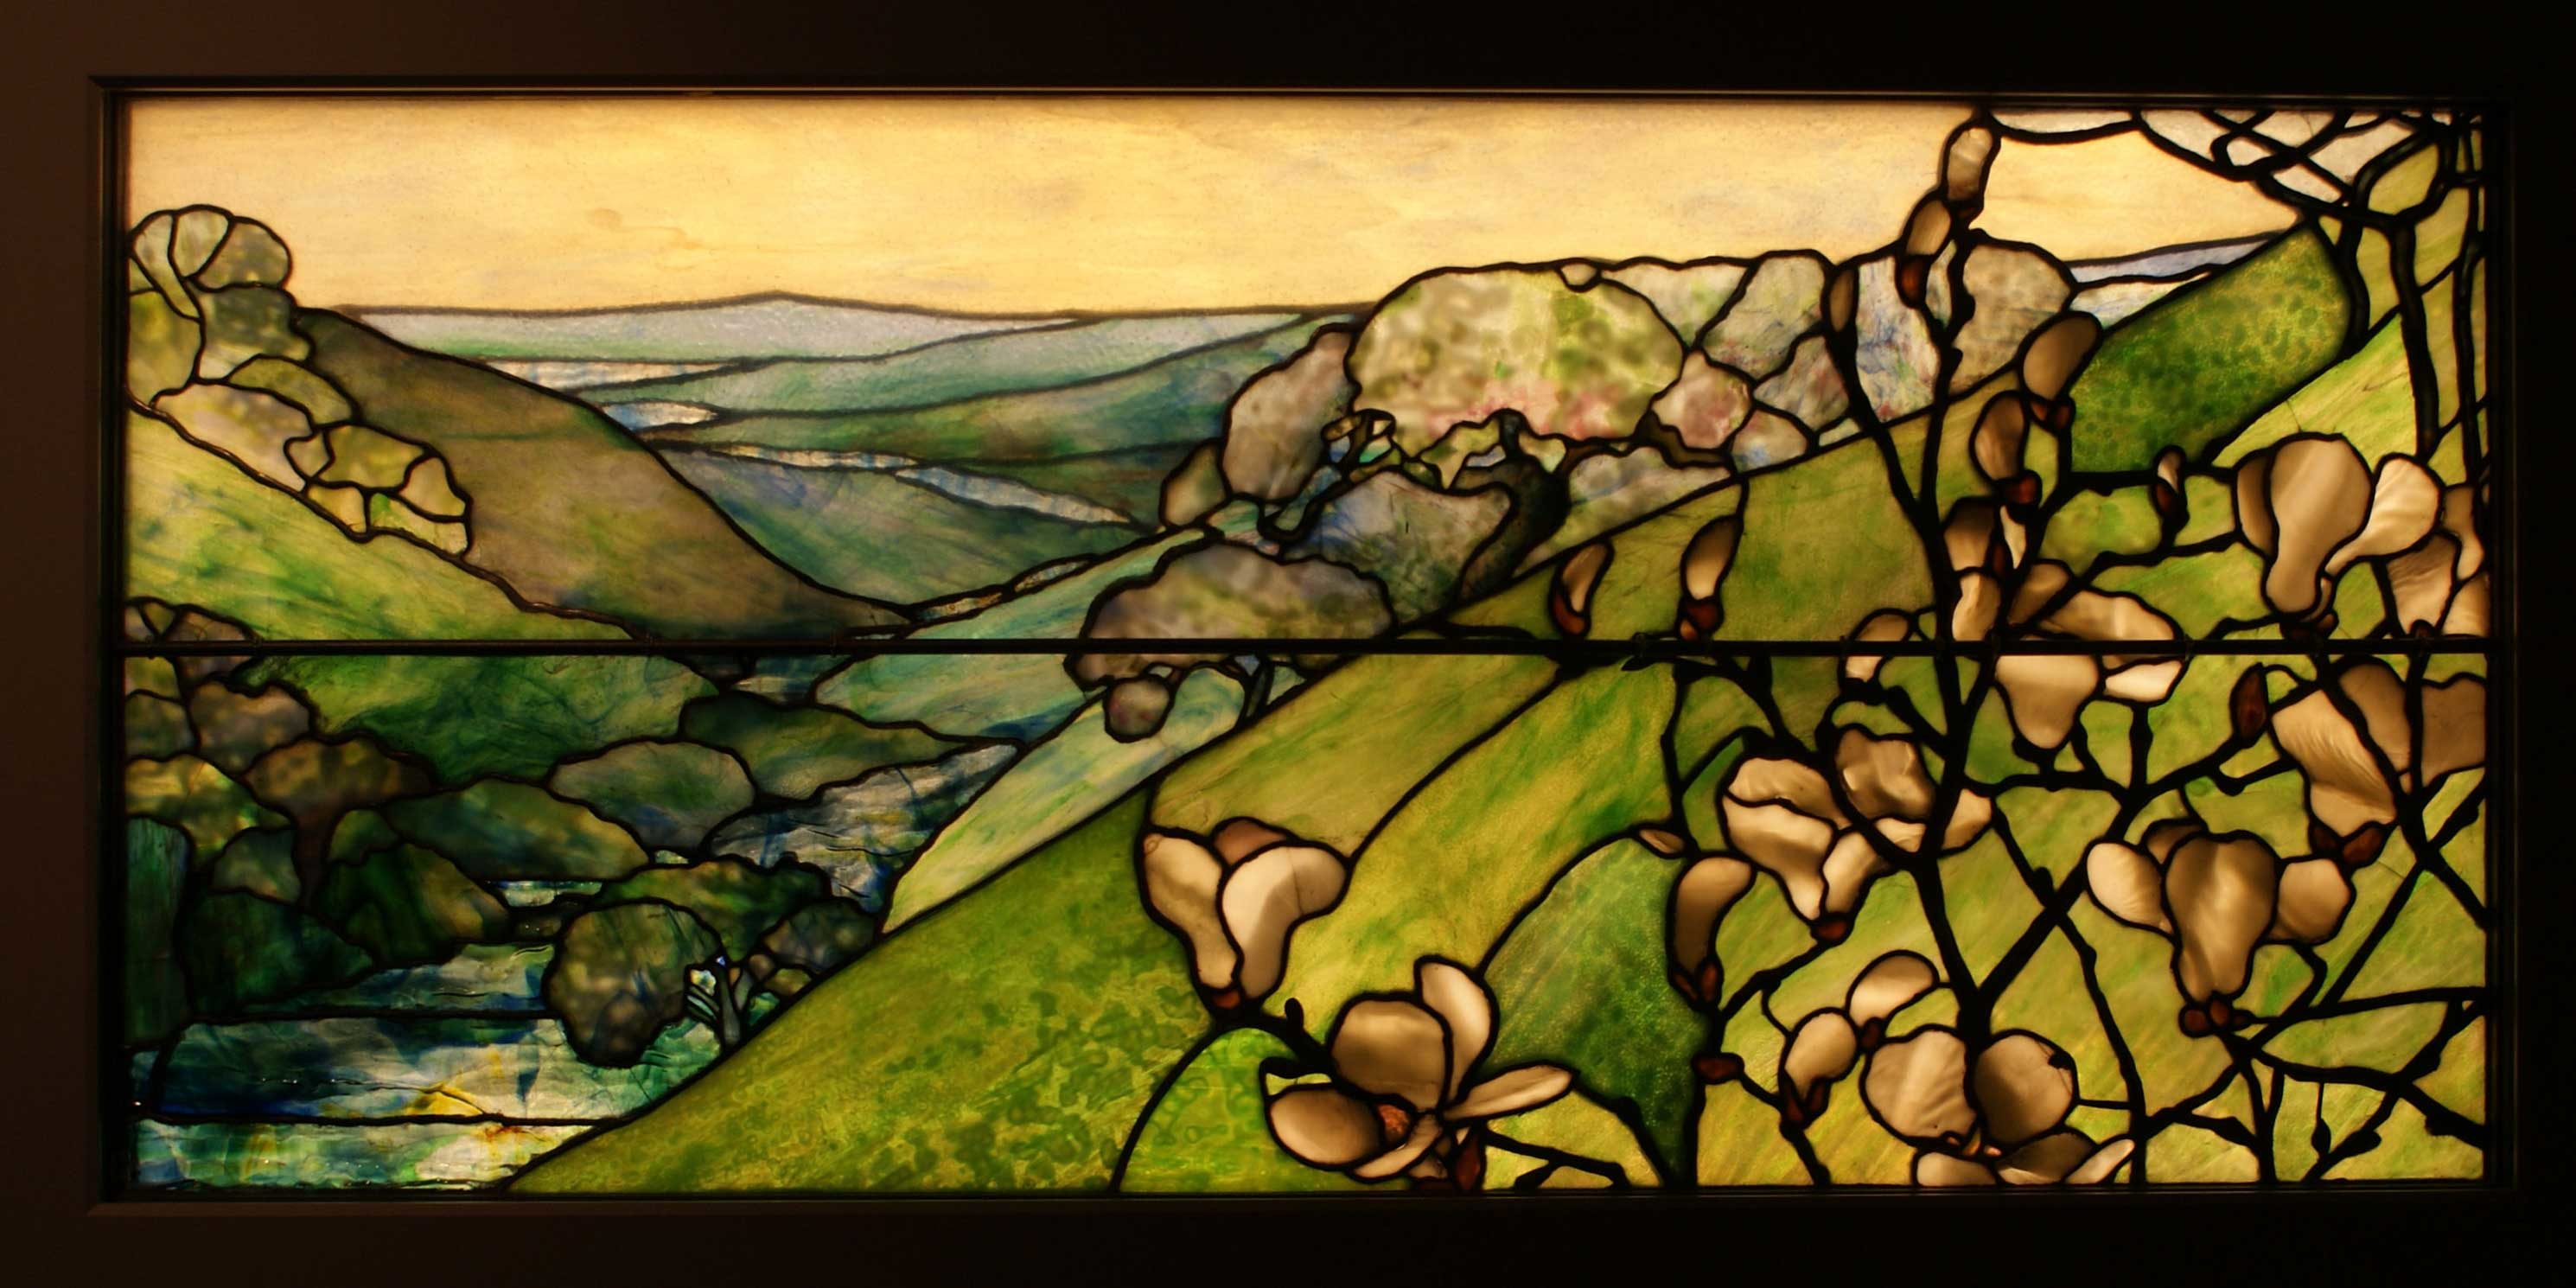 stained glass window featuring a landscape of green mountains